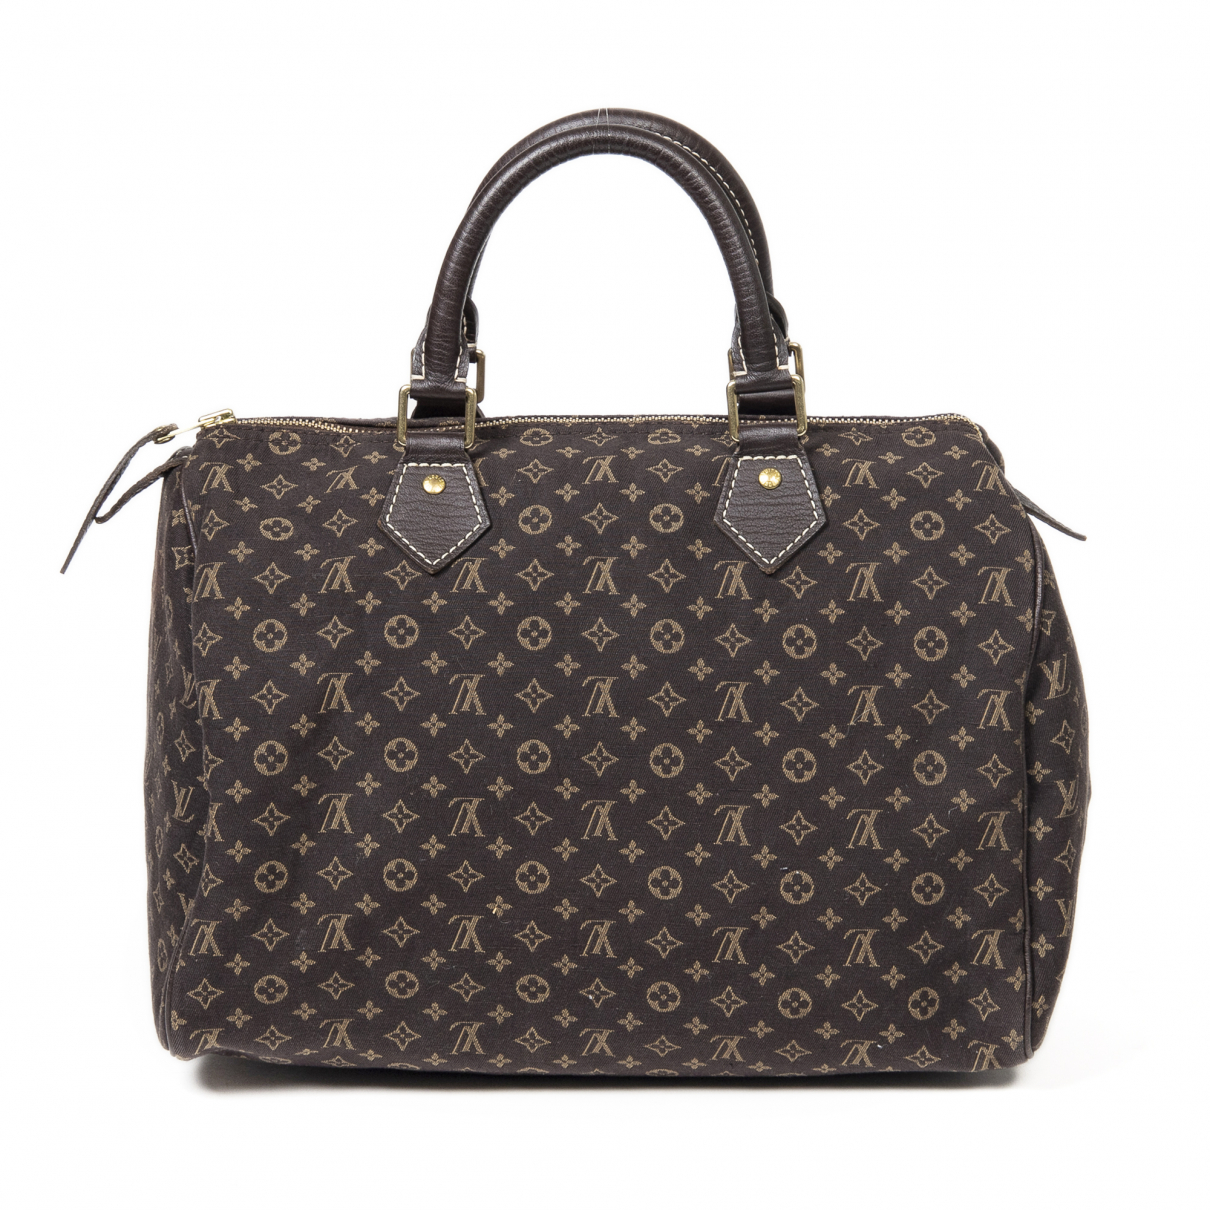 Louis Vuitton \N Brown Cotton handbag for Women \N